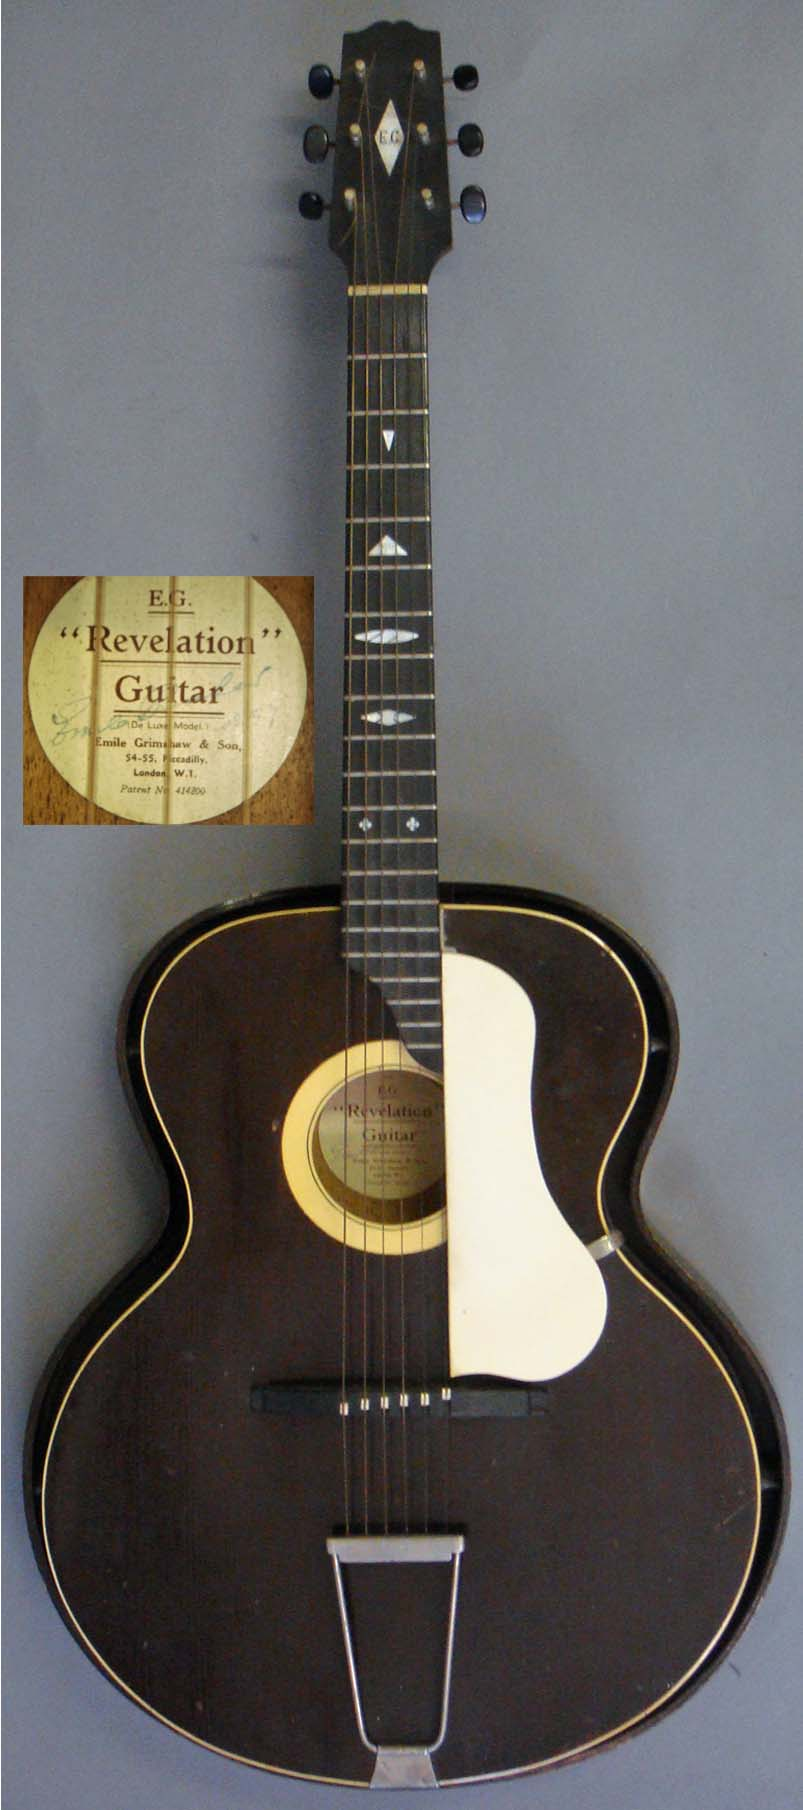 Auktionslos 143 - A 1935 Emile Grimshaw Revelation Guitar, de-luxe model with fitted resonator. As with most 1930s